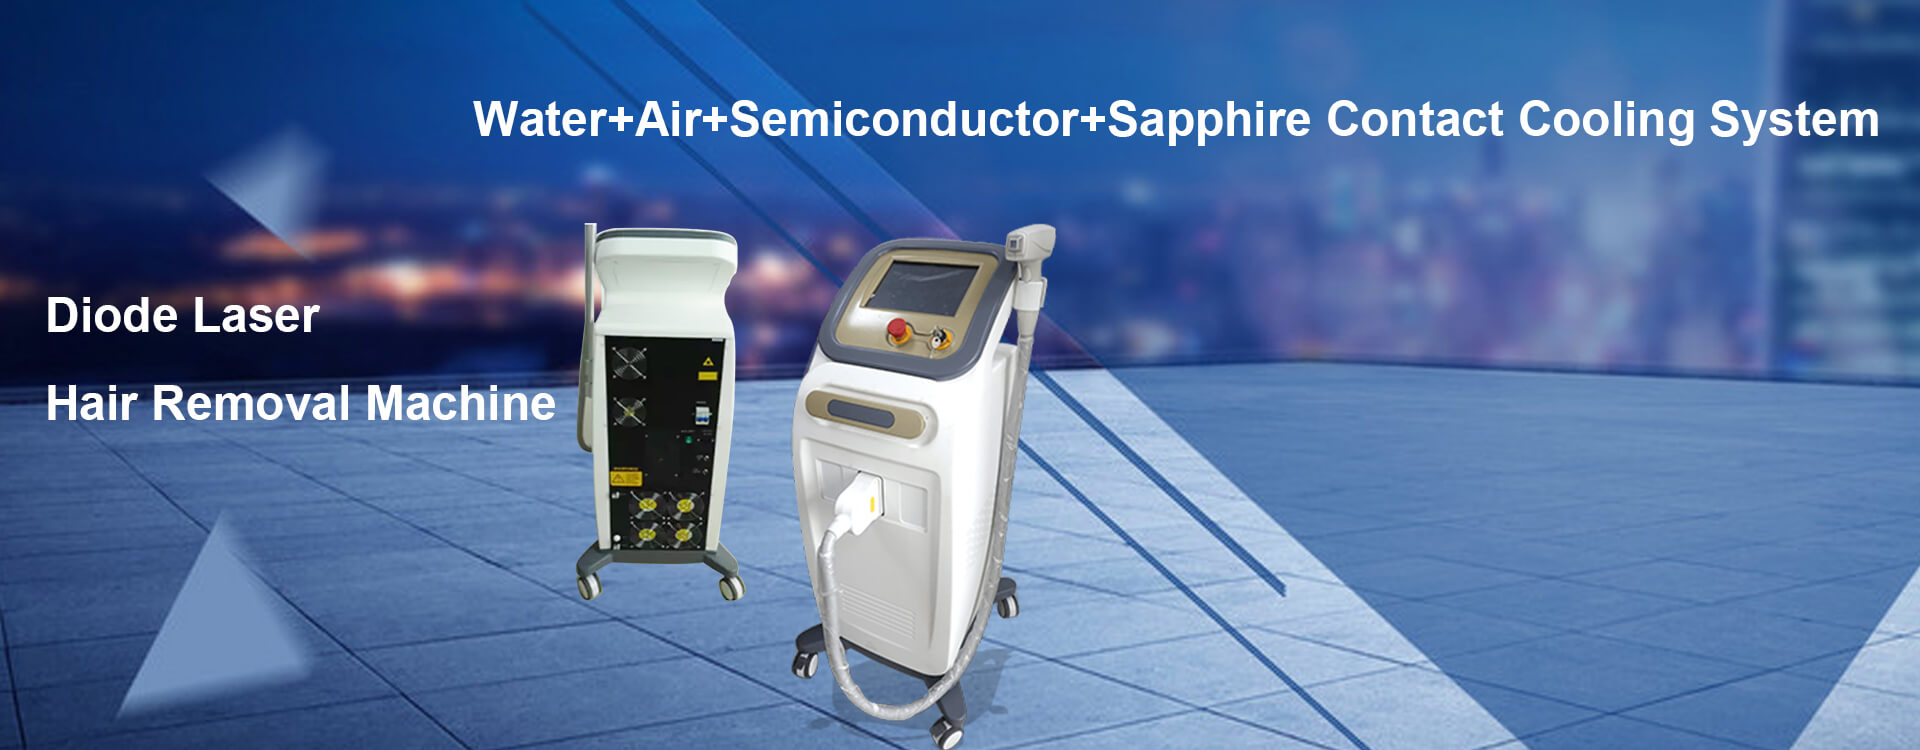 Water+Air+Semiconductor+Sapphire Contact Cooling System